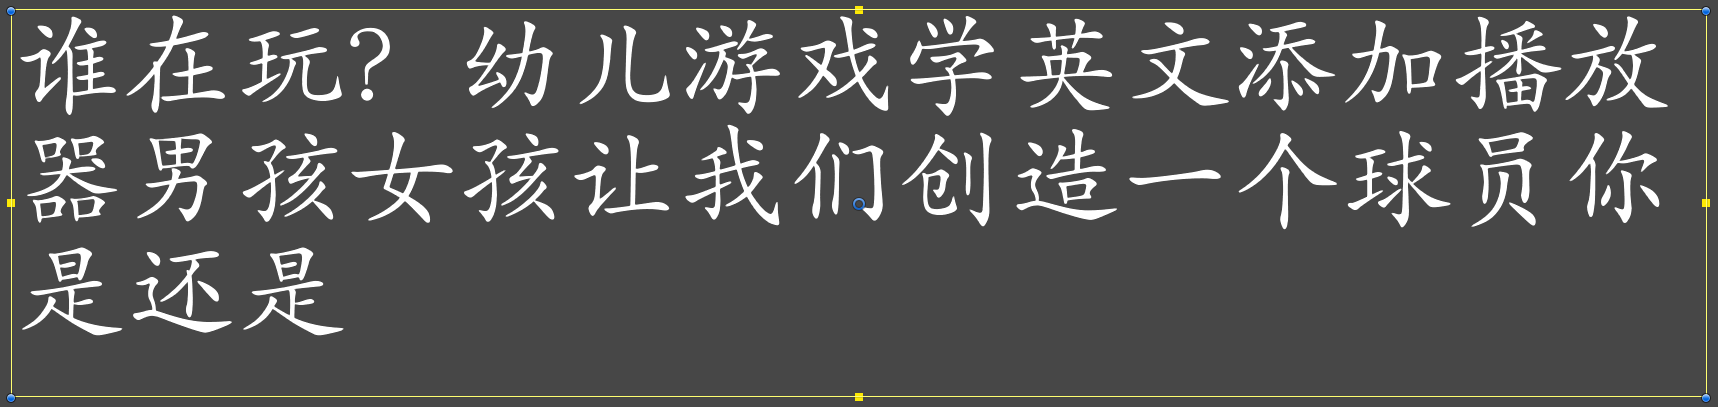 TextMesh Pro - Chinese font problems - Unity Forum